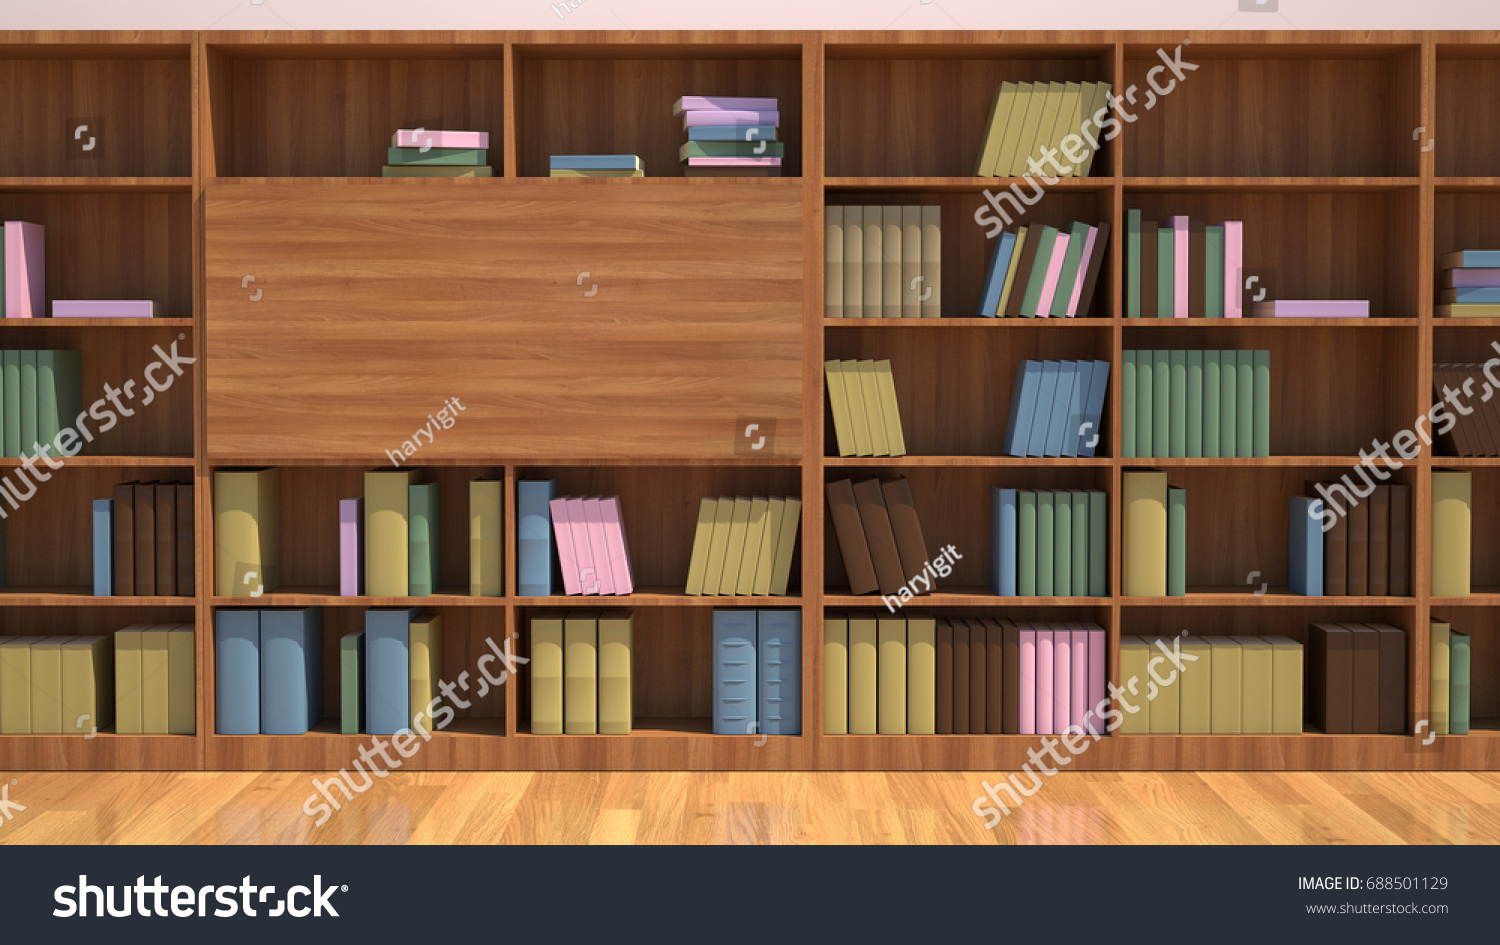 Bookshelf With Books Education Library Book Store Concept 3D Render